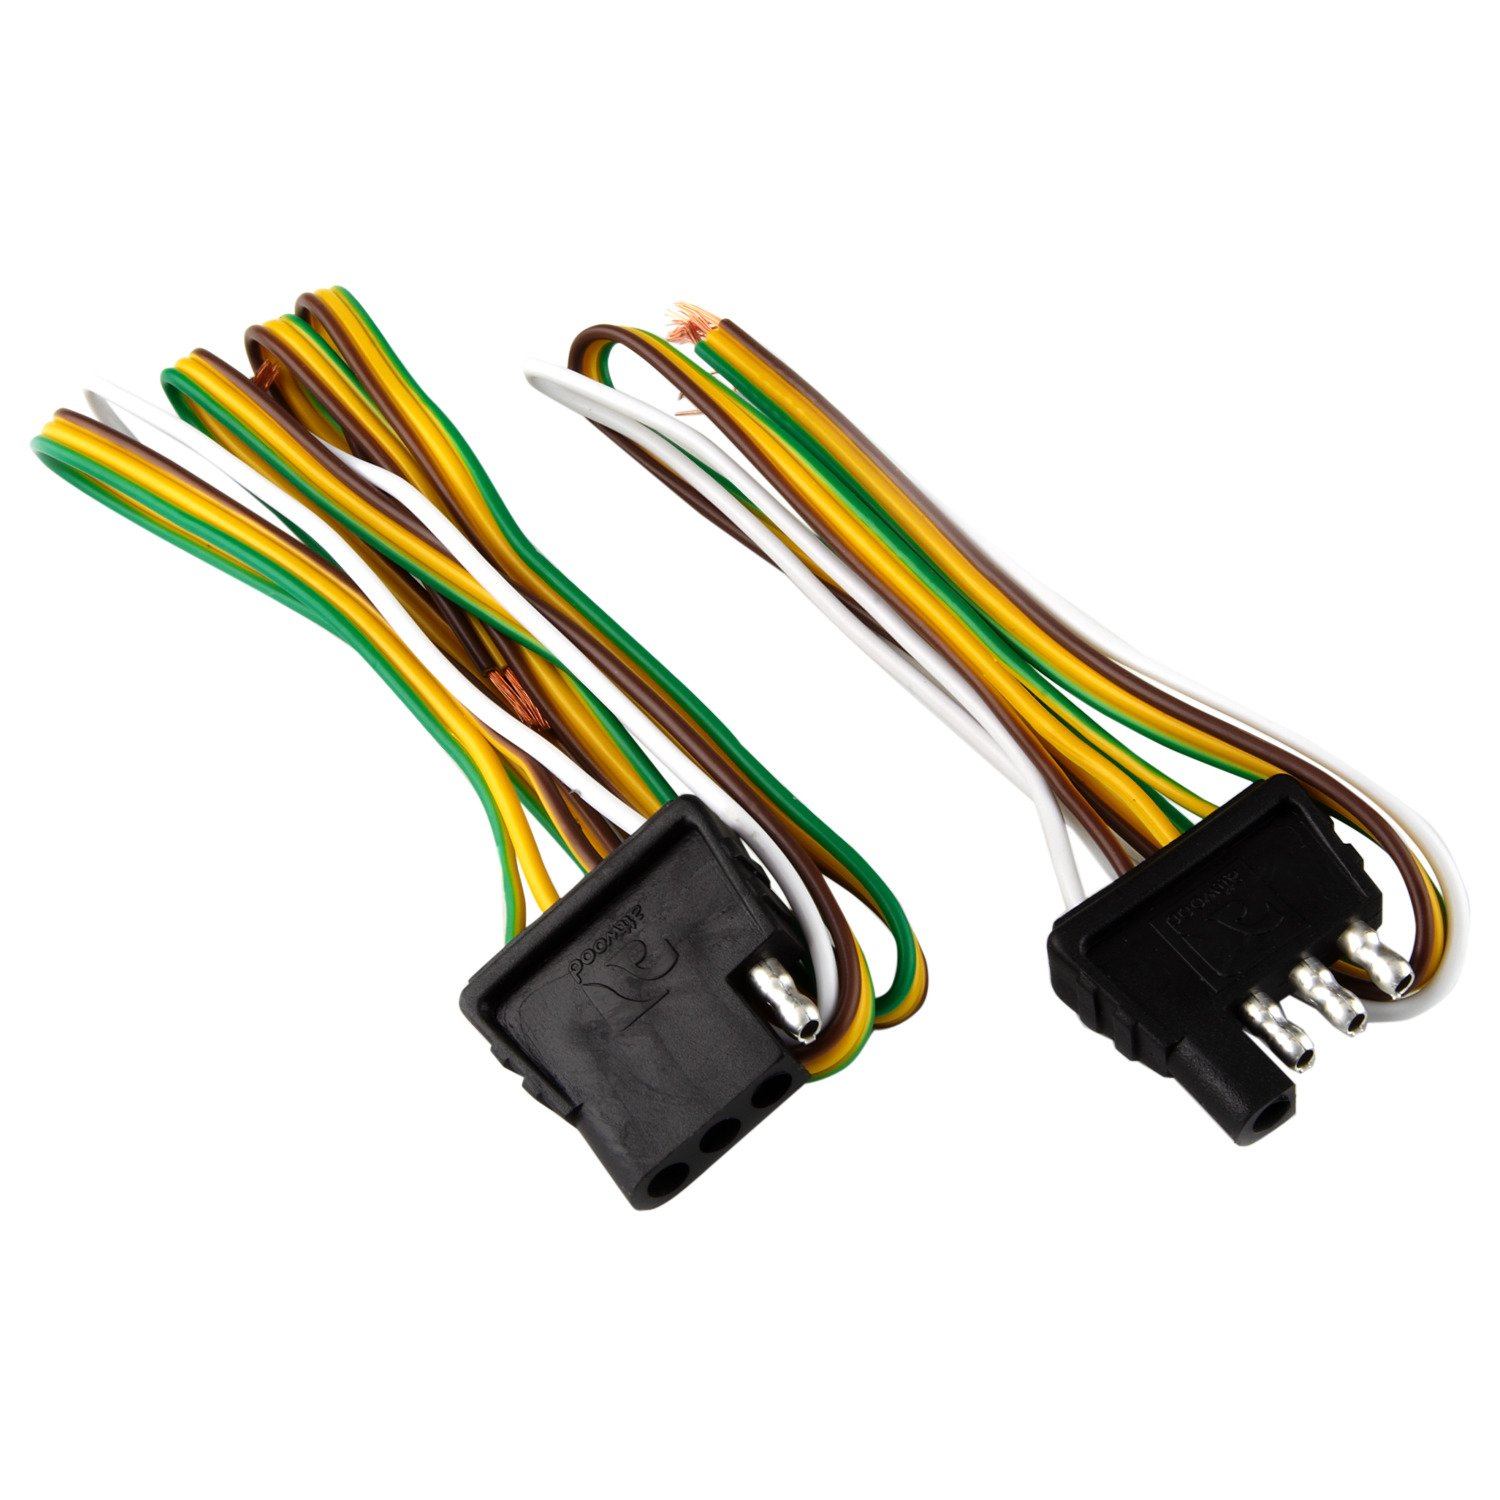 medium resolution of attwood 4 way flat wiring harness kit for vehicles and trailers u haul trailer wiring flat 4 wiring harness